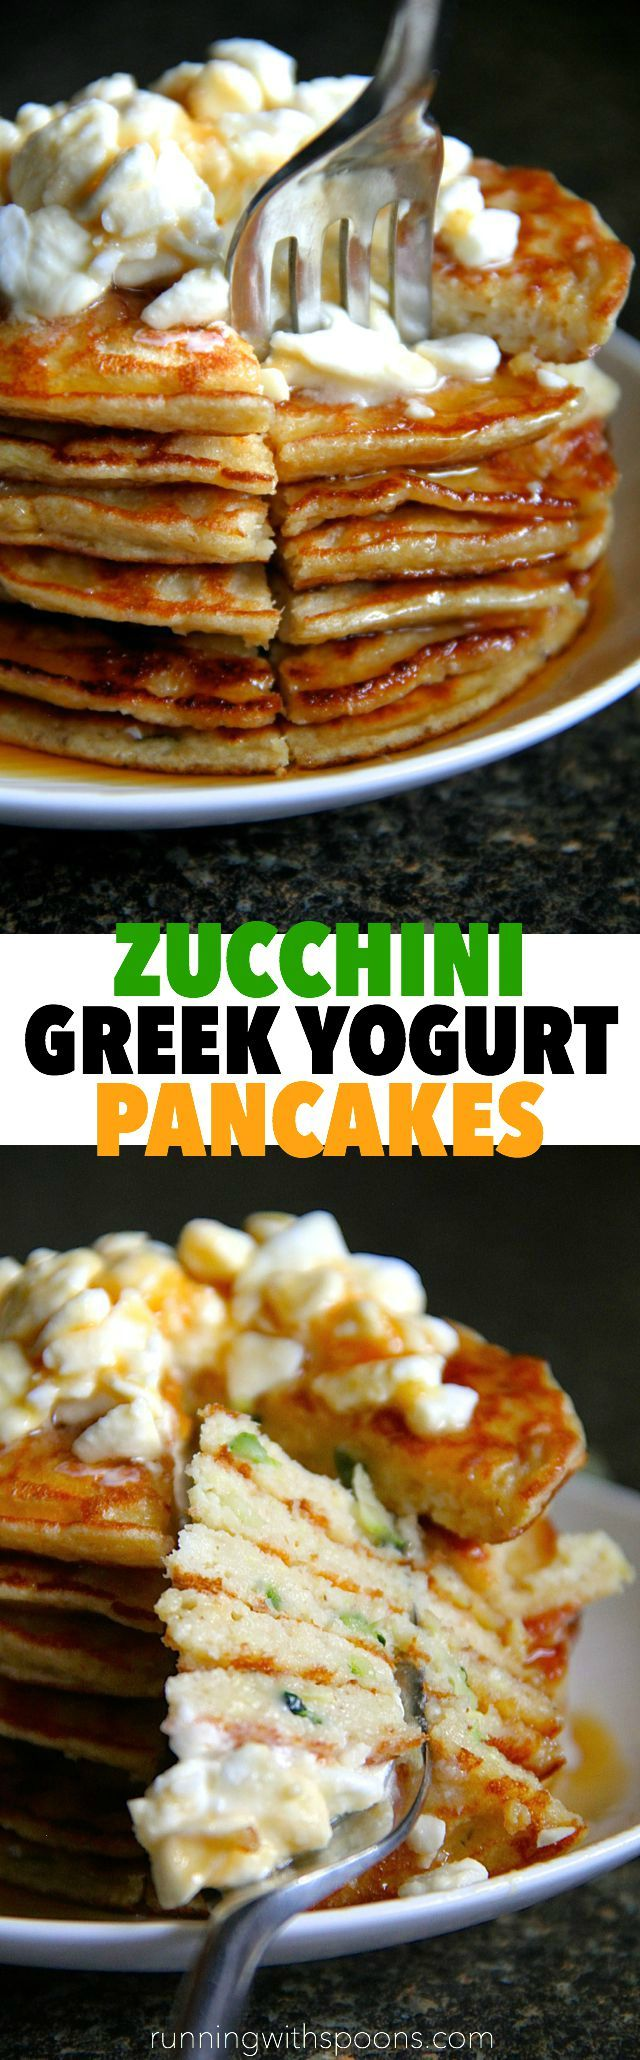 Zucchini Greek Yogurt Pancakes -- light, fluffy, and gluten-free, enjoy the ENTIRE recipe for under 300 calories and 20g of protein! || runningwithspoons.com #glutenfree #breakfast